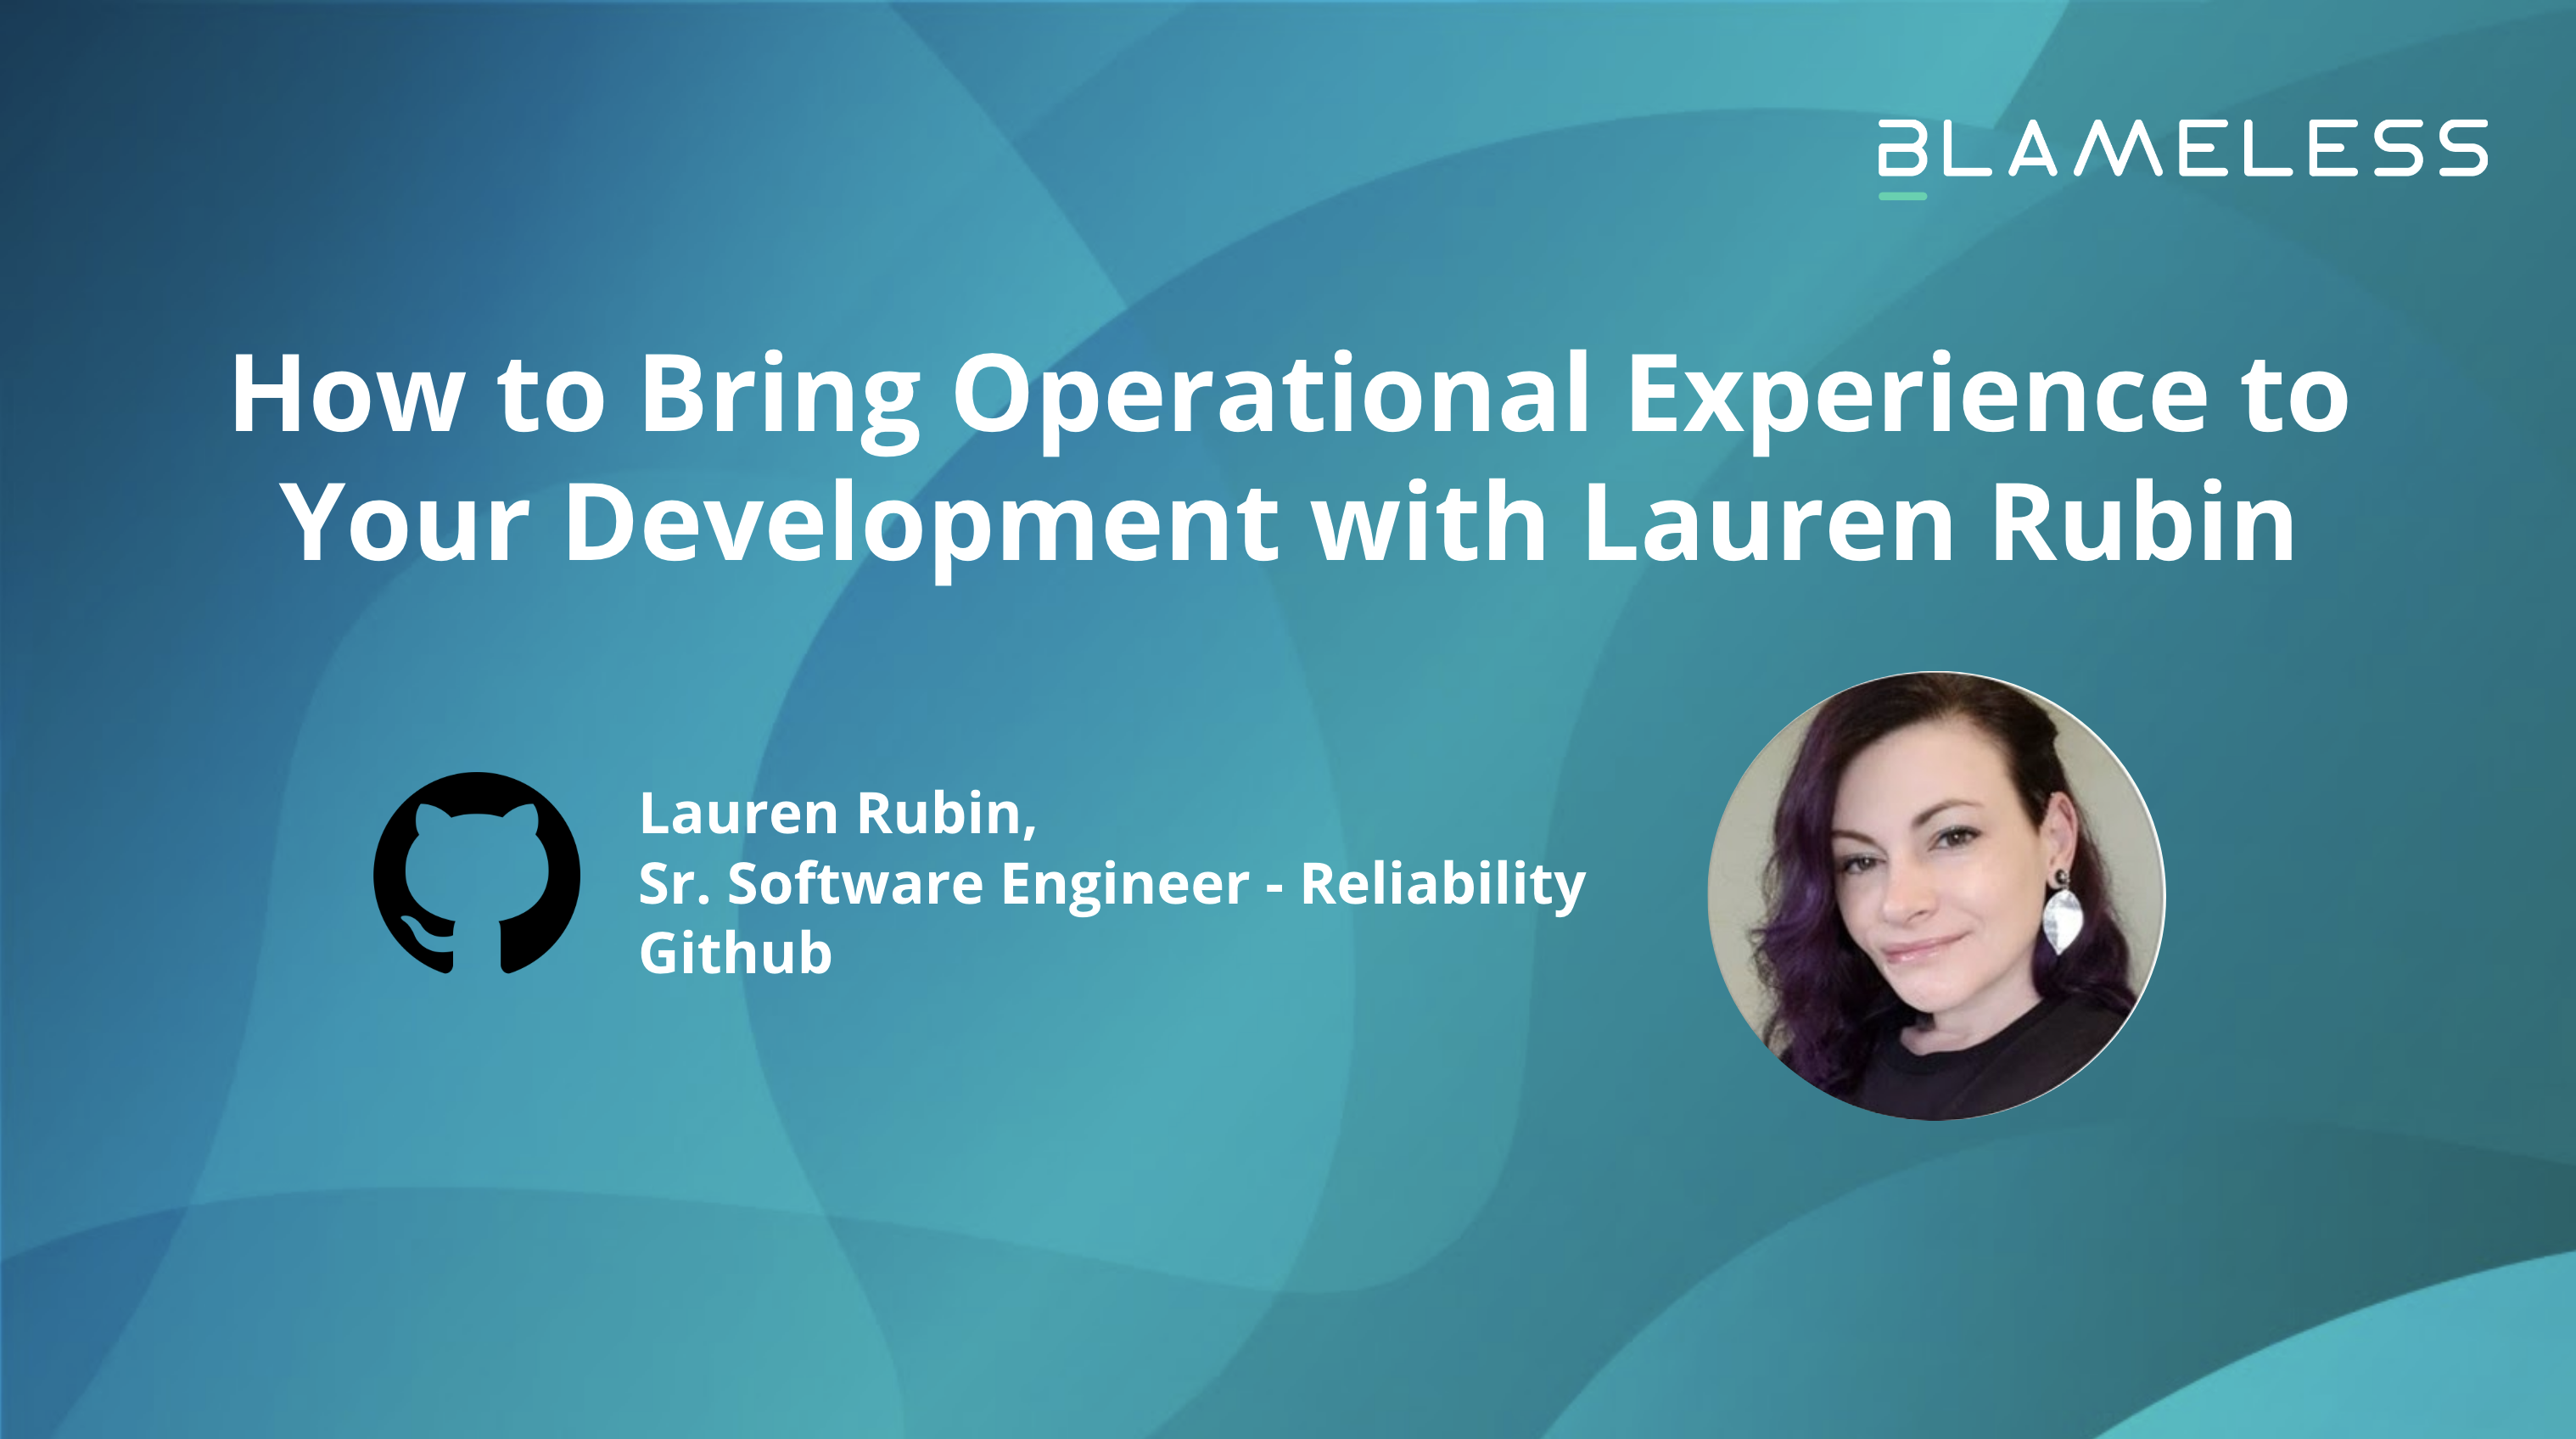 How to Bring Operational Experience to your Development with Github's Lauren Rubin